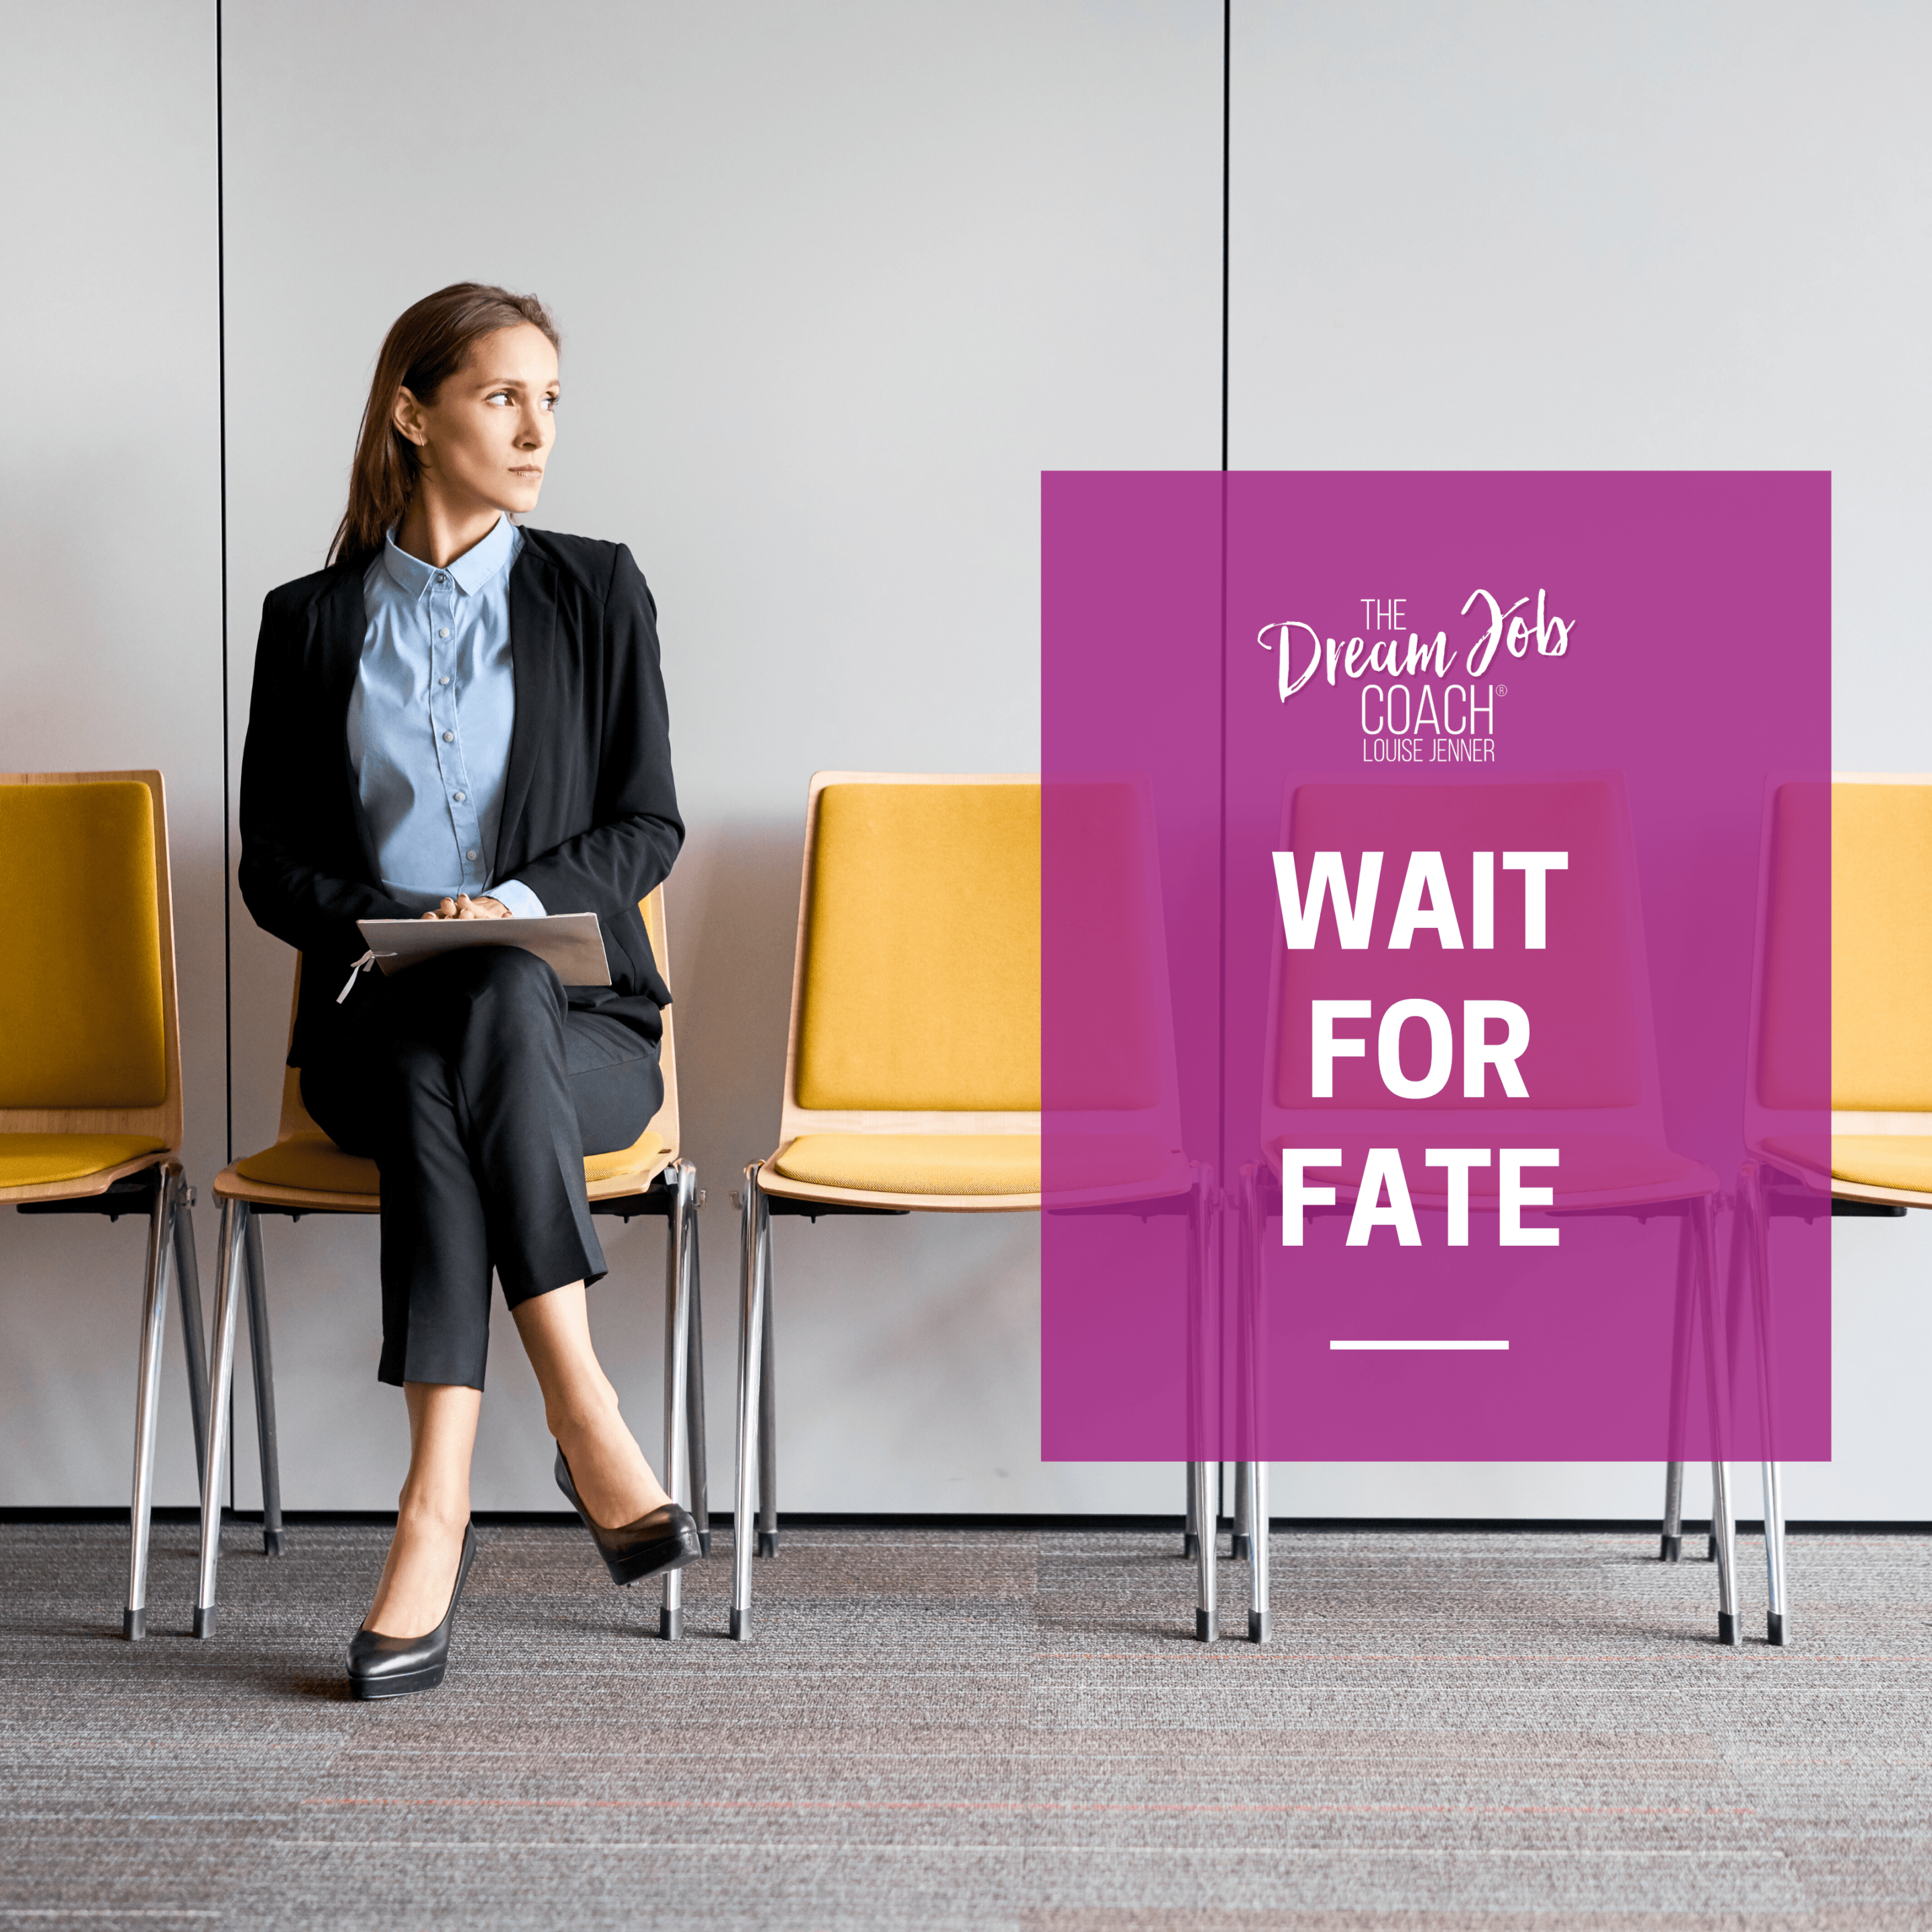 Wait for fate! - Louise Jenner, The Dream Job Coach - Career Coaching - Devon - Online